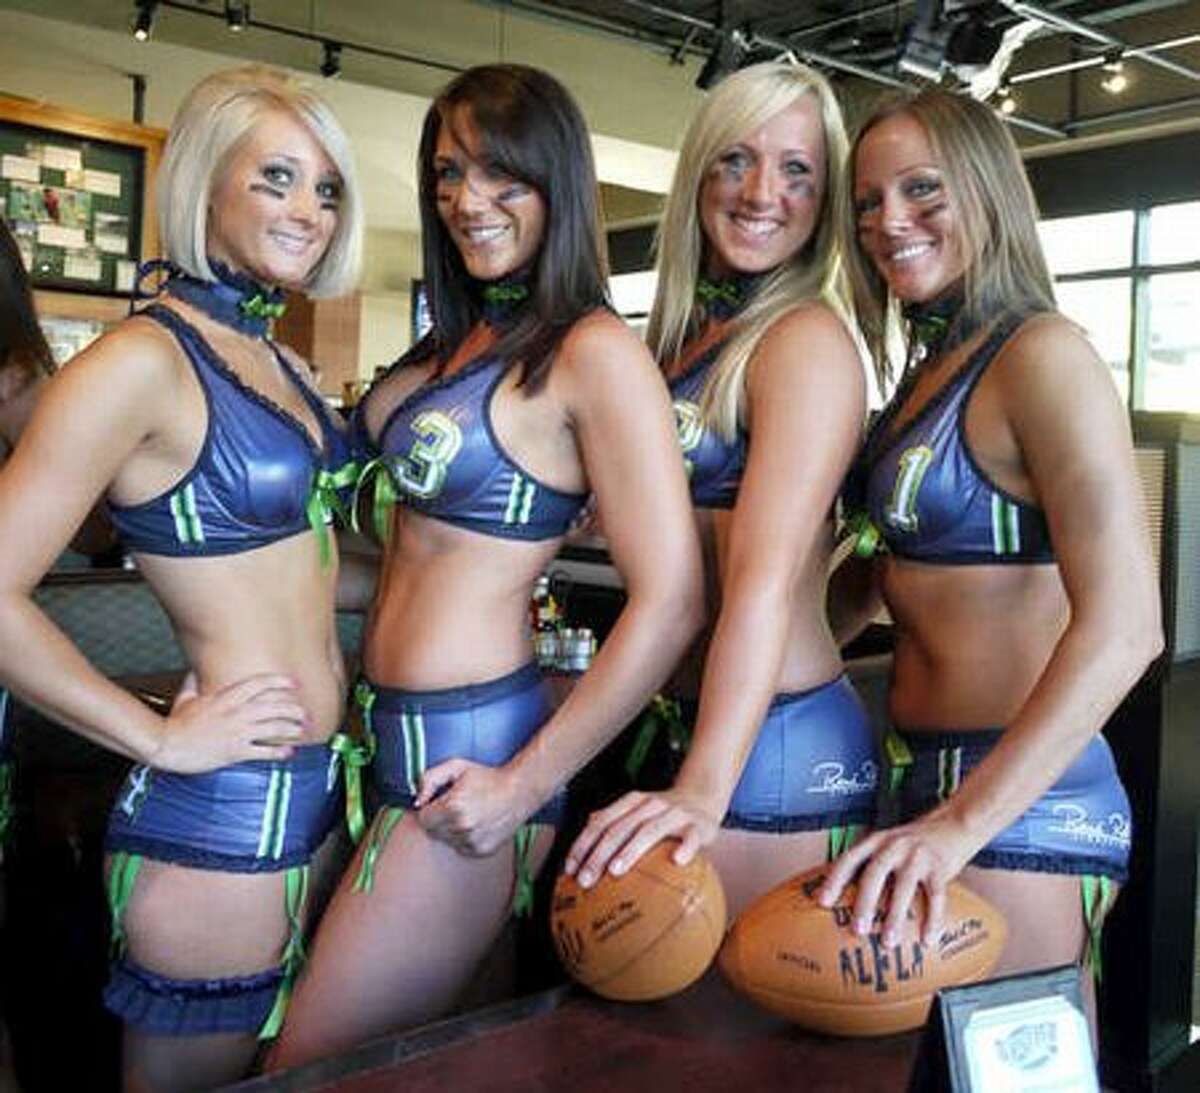 Seattle Mist players pose for photos during the team's media day at Sport Restaurant in Seattle on Wednesday.